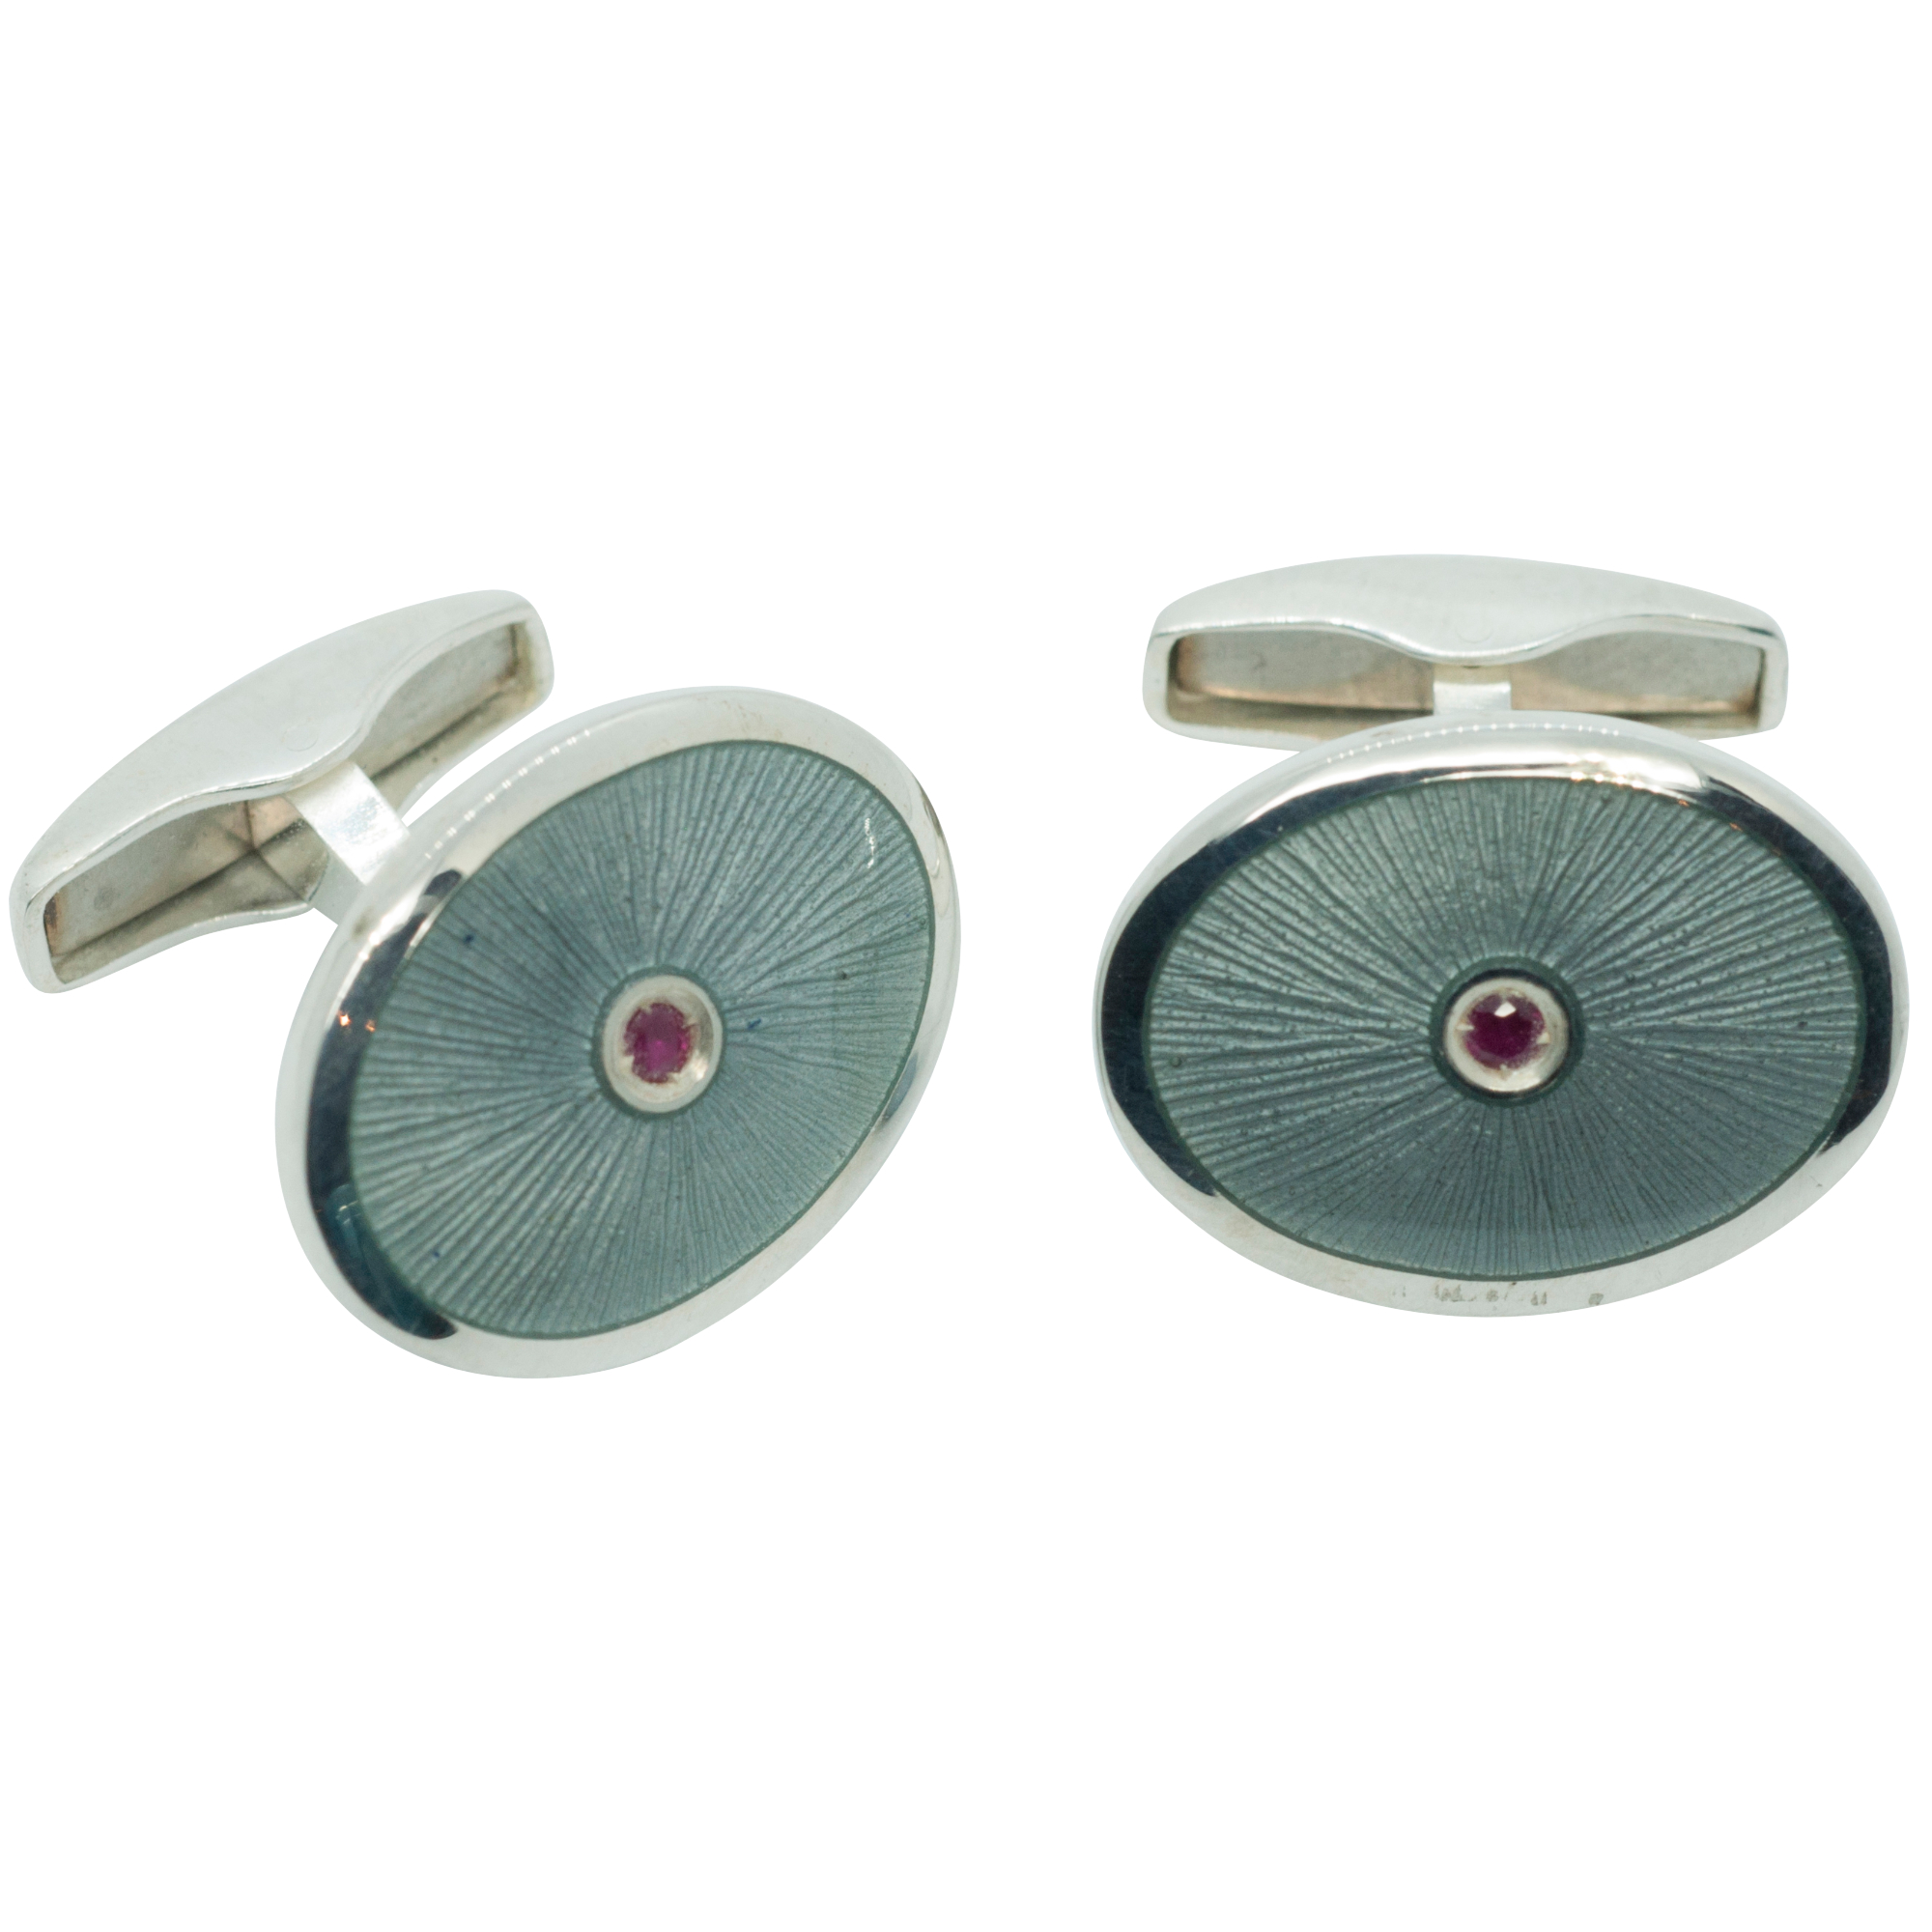 Sterling Silver Enamel Oval Cufflinks with Ruby Centre